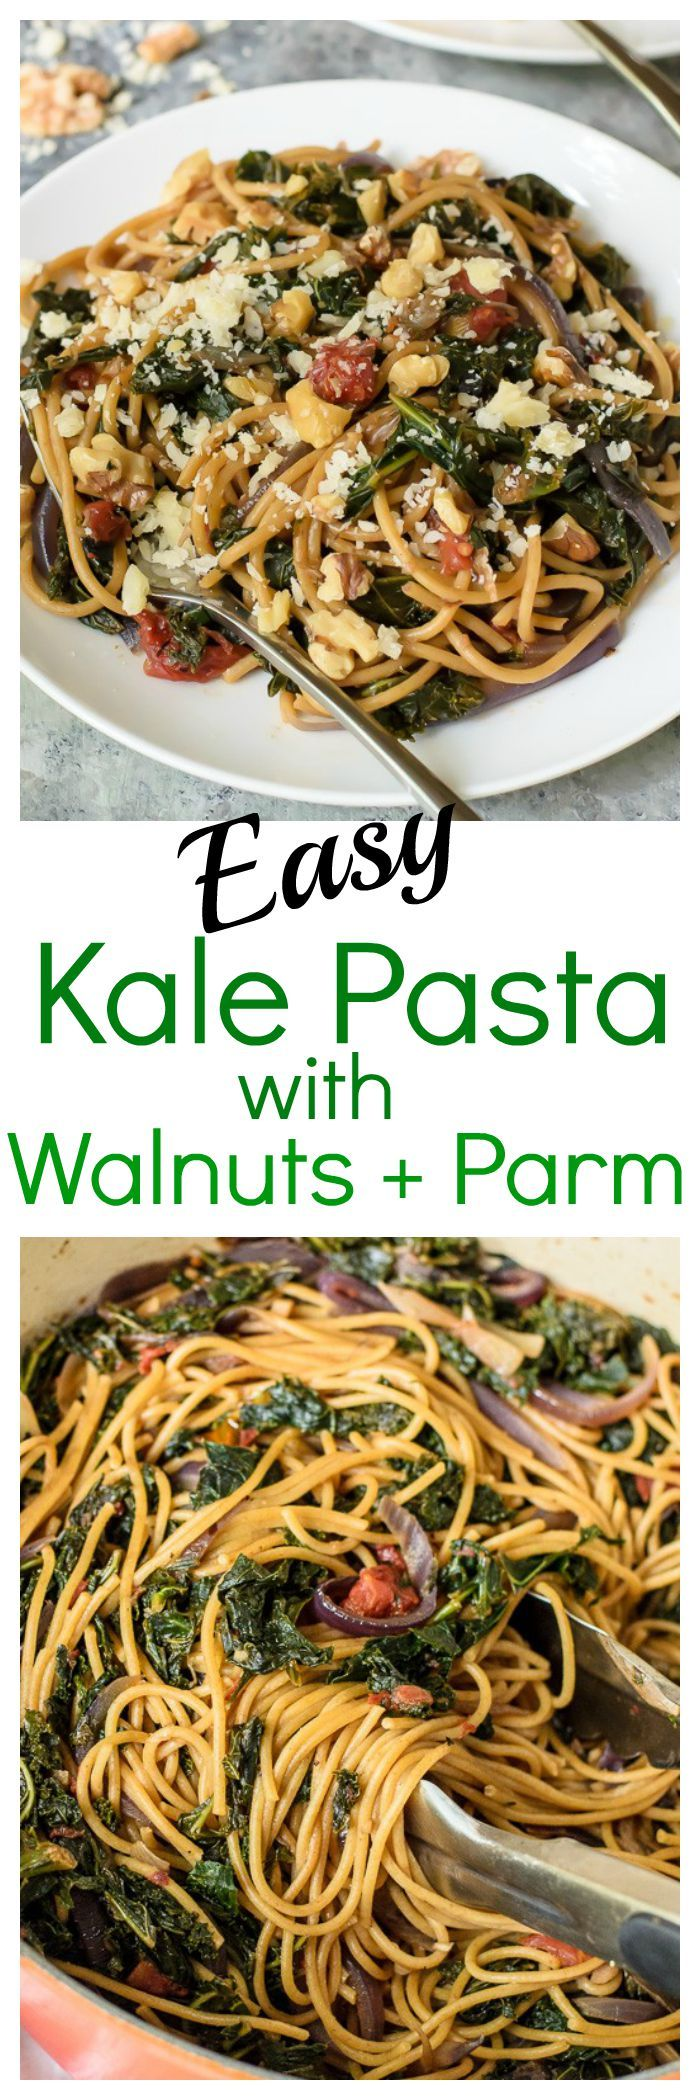 Kale Pasta with Walnuts and Parmesan. Healthy, beautiful, and ready in less than 30 minutes! #wholewheatpasta #kale #healthy